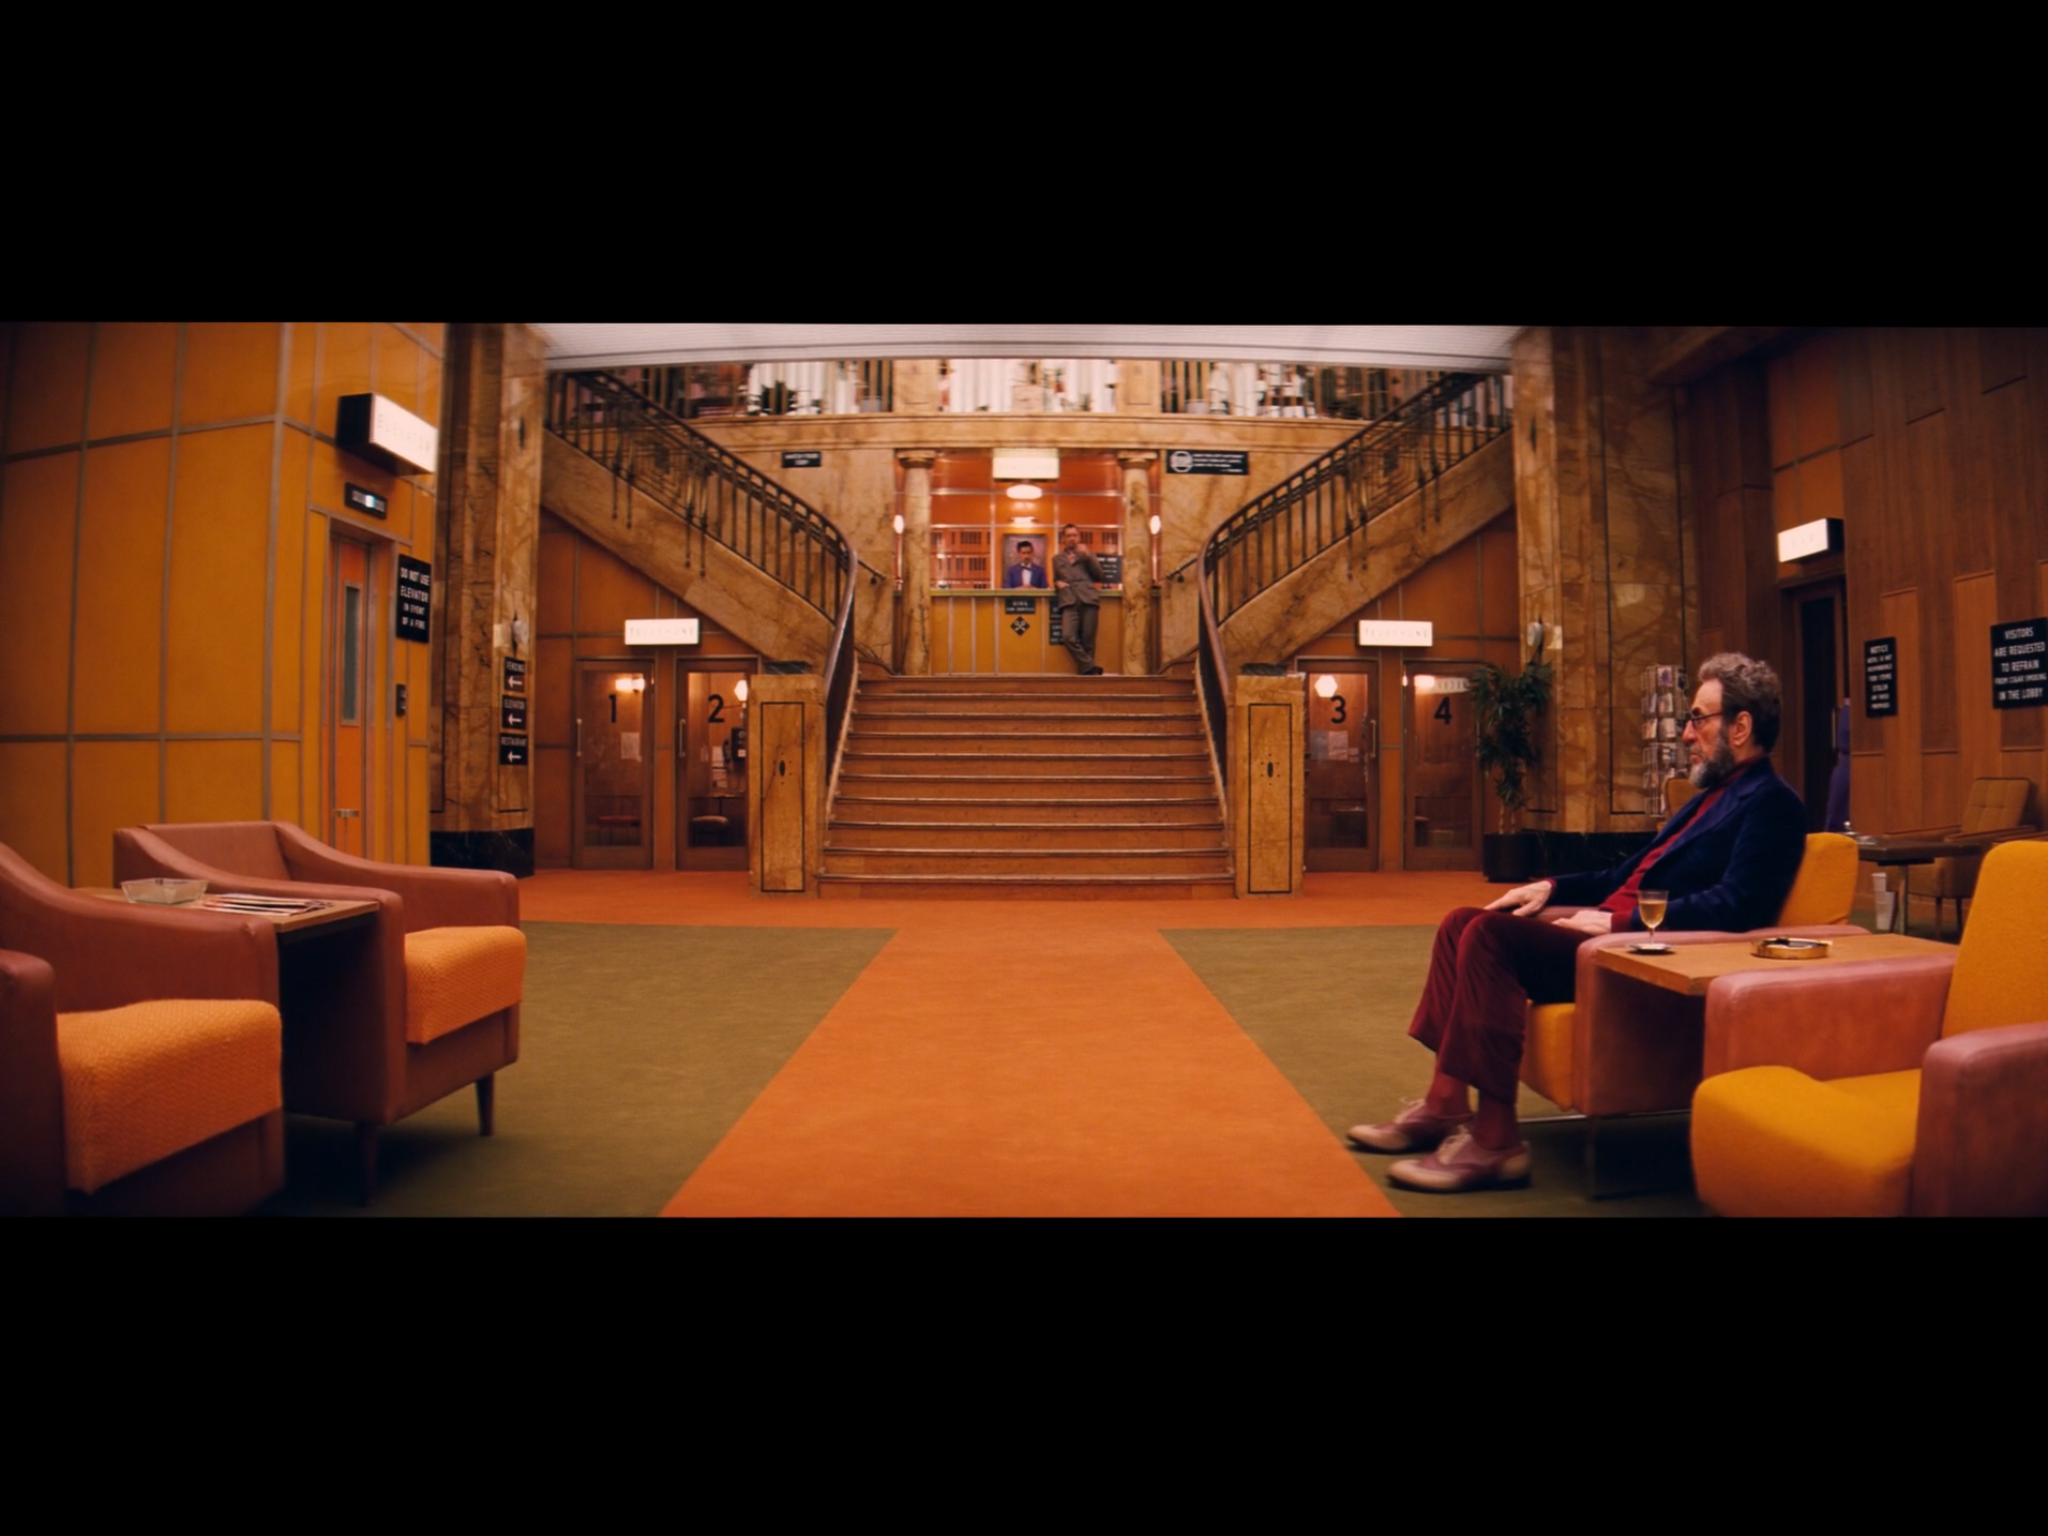 Screenshot of the young Author's first glimpse of the elderly Zero in the Grand Budapest Hotel lobby (in the 1960s). The film location of the above scenes was the Görlitz Warenhaus Department Store.